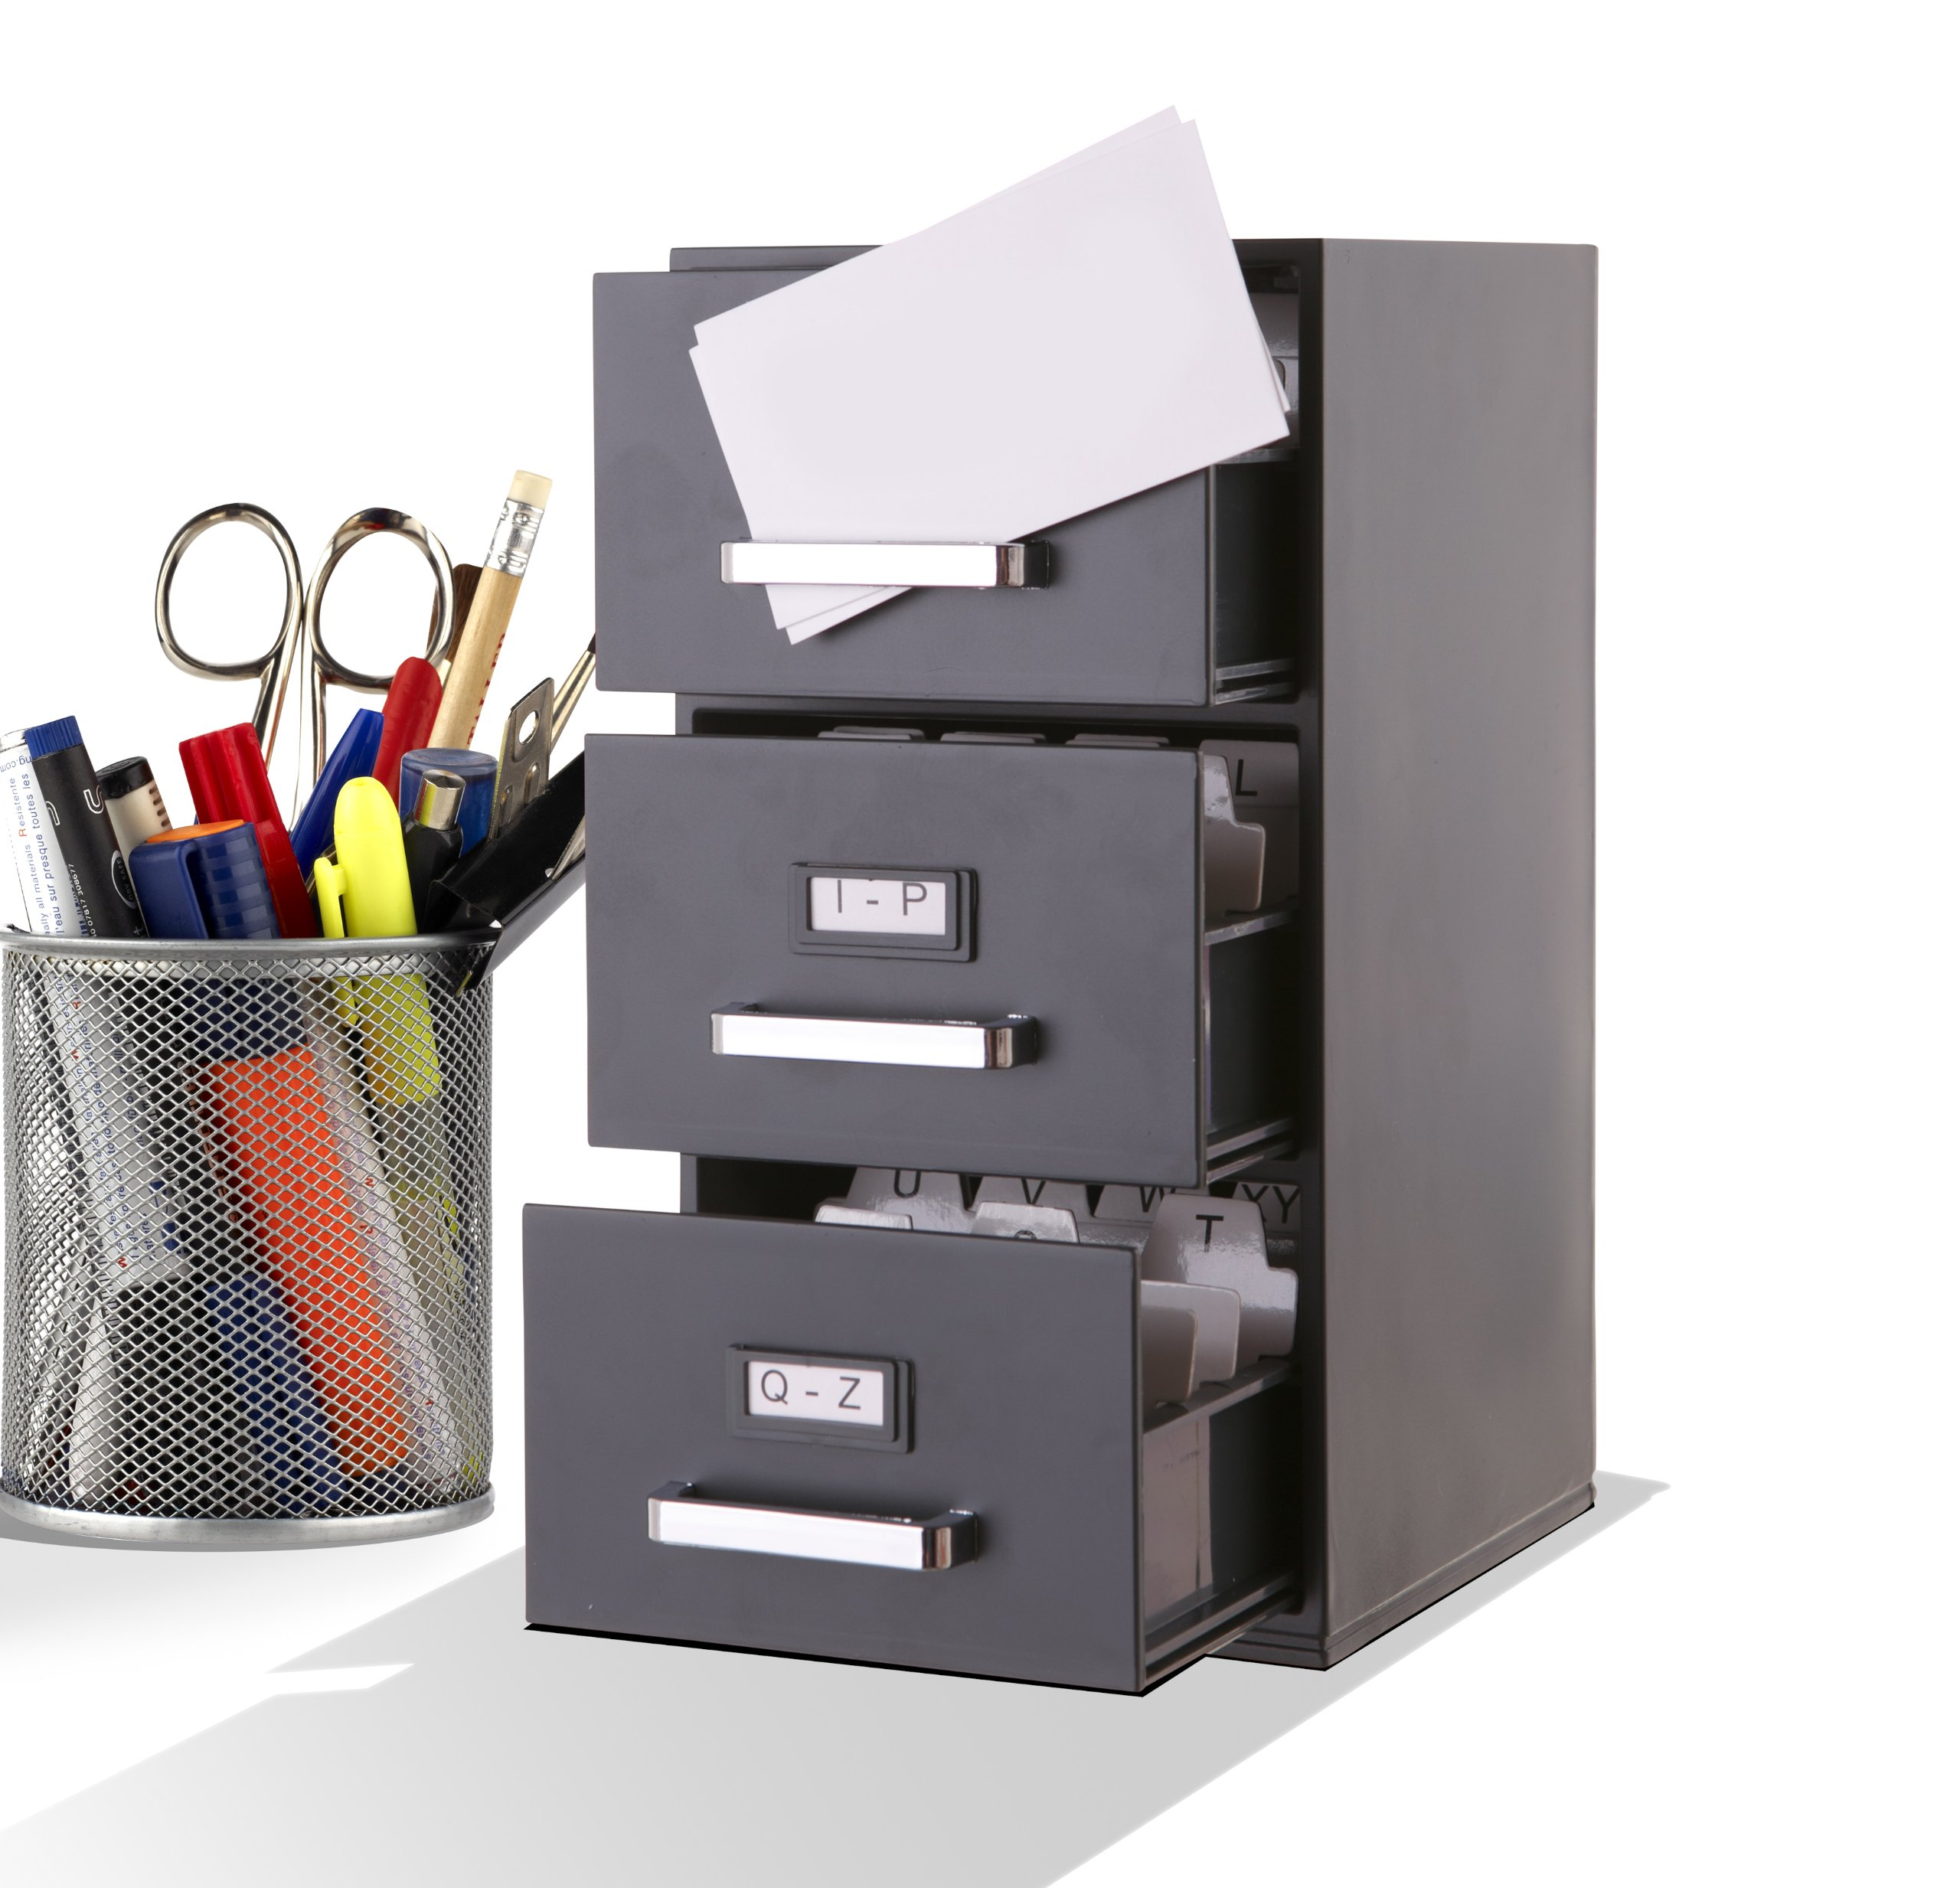 interior solutions organizer pictures elegant of drawers home file best space modern cabinet drawer model cabinets